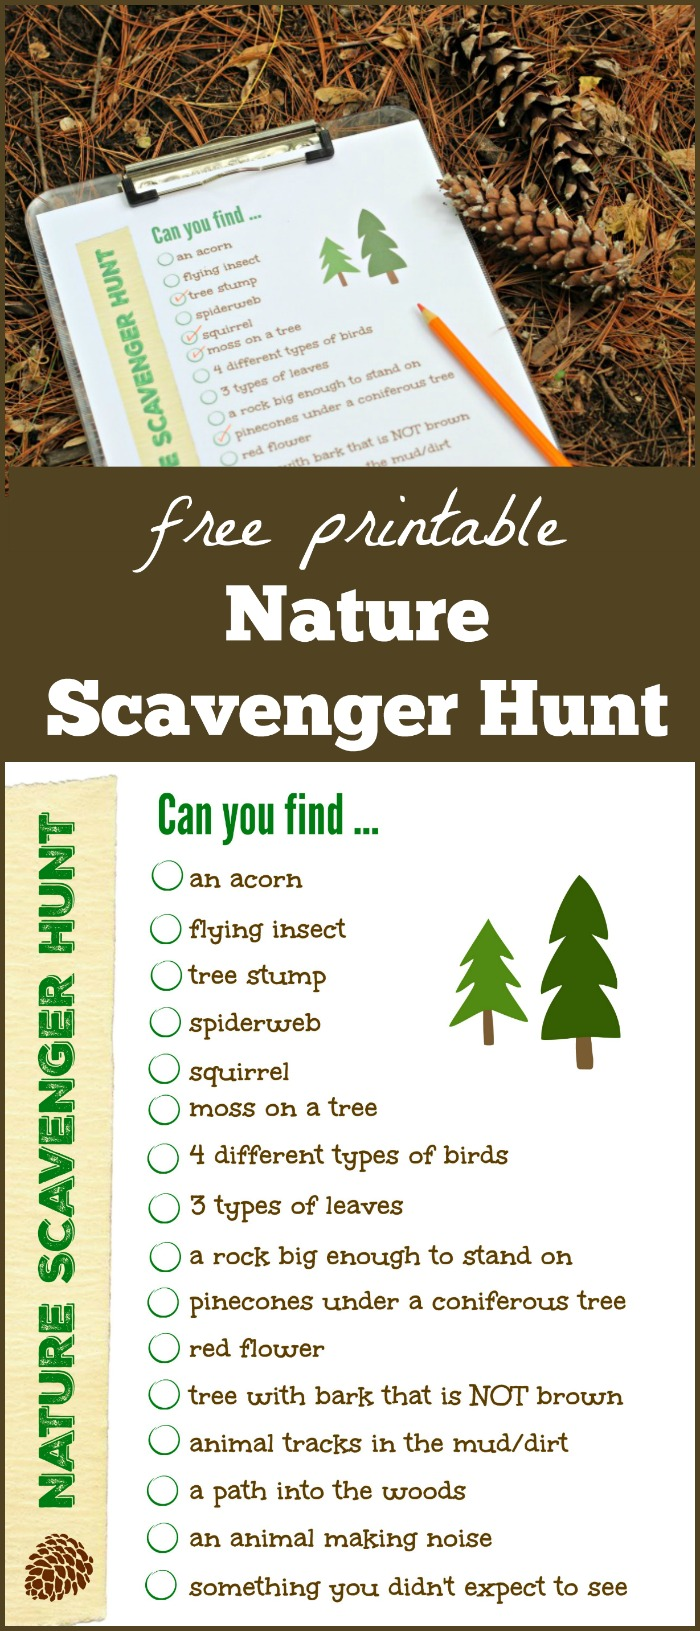 Nature Scavenger Hunt printable list for preschool, kids, tweens and families